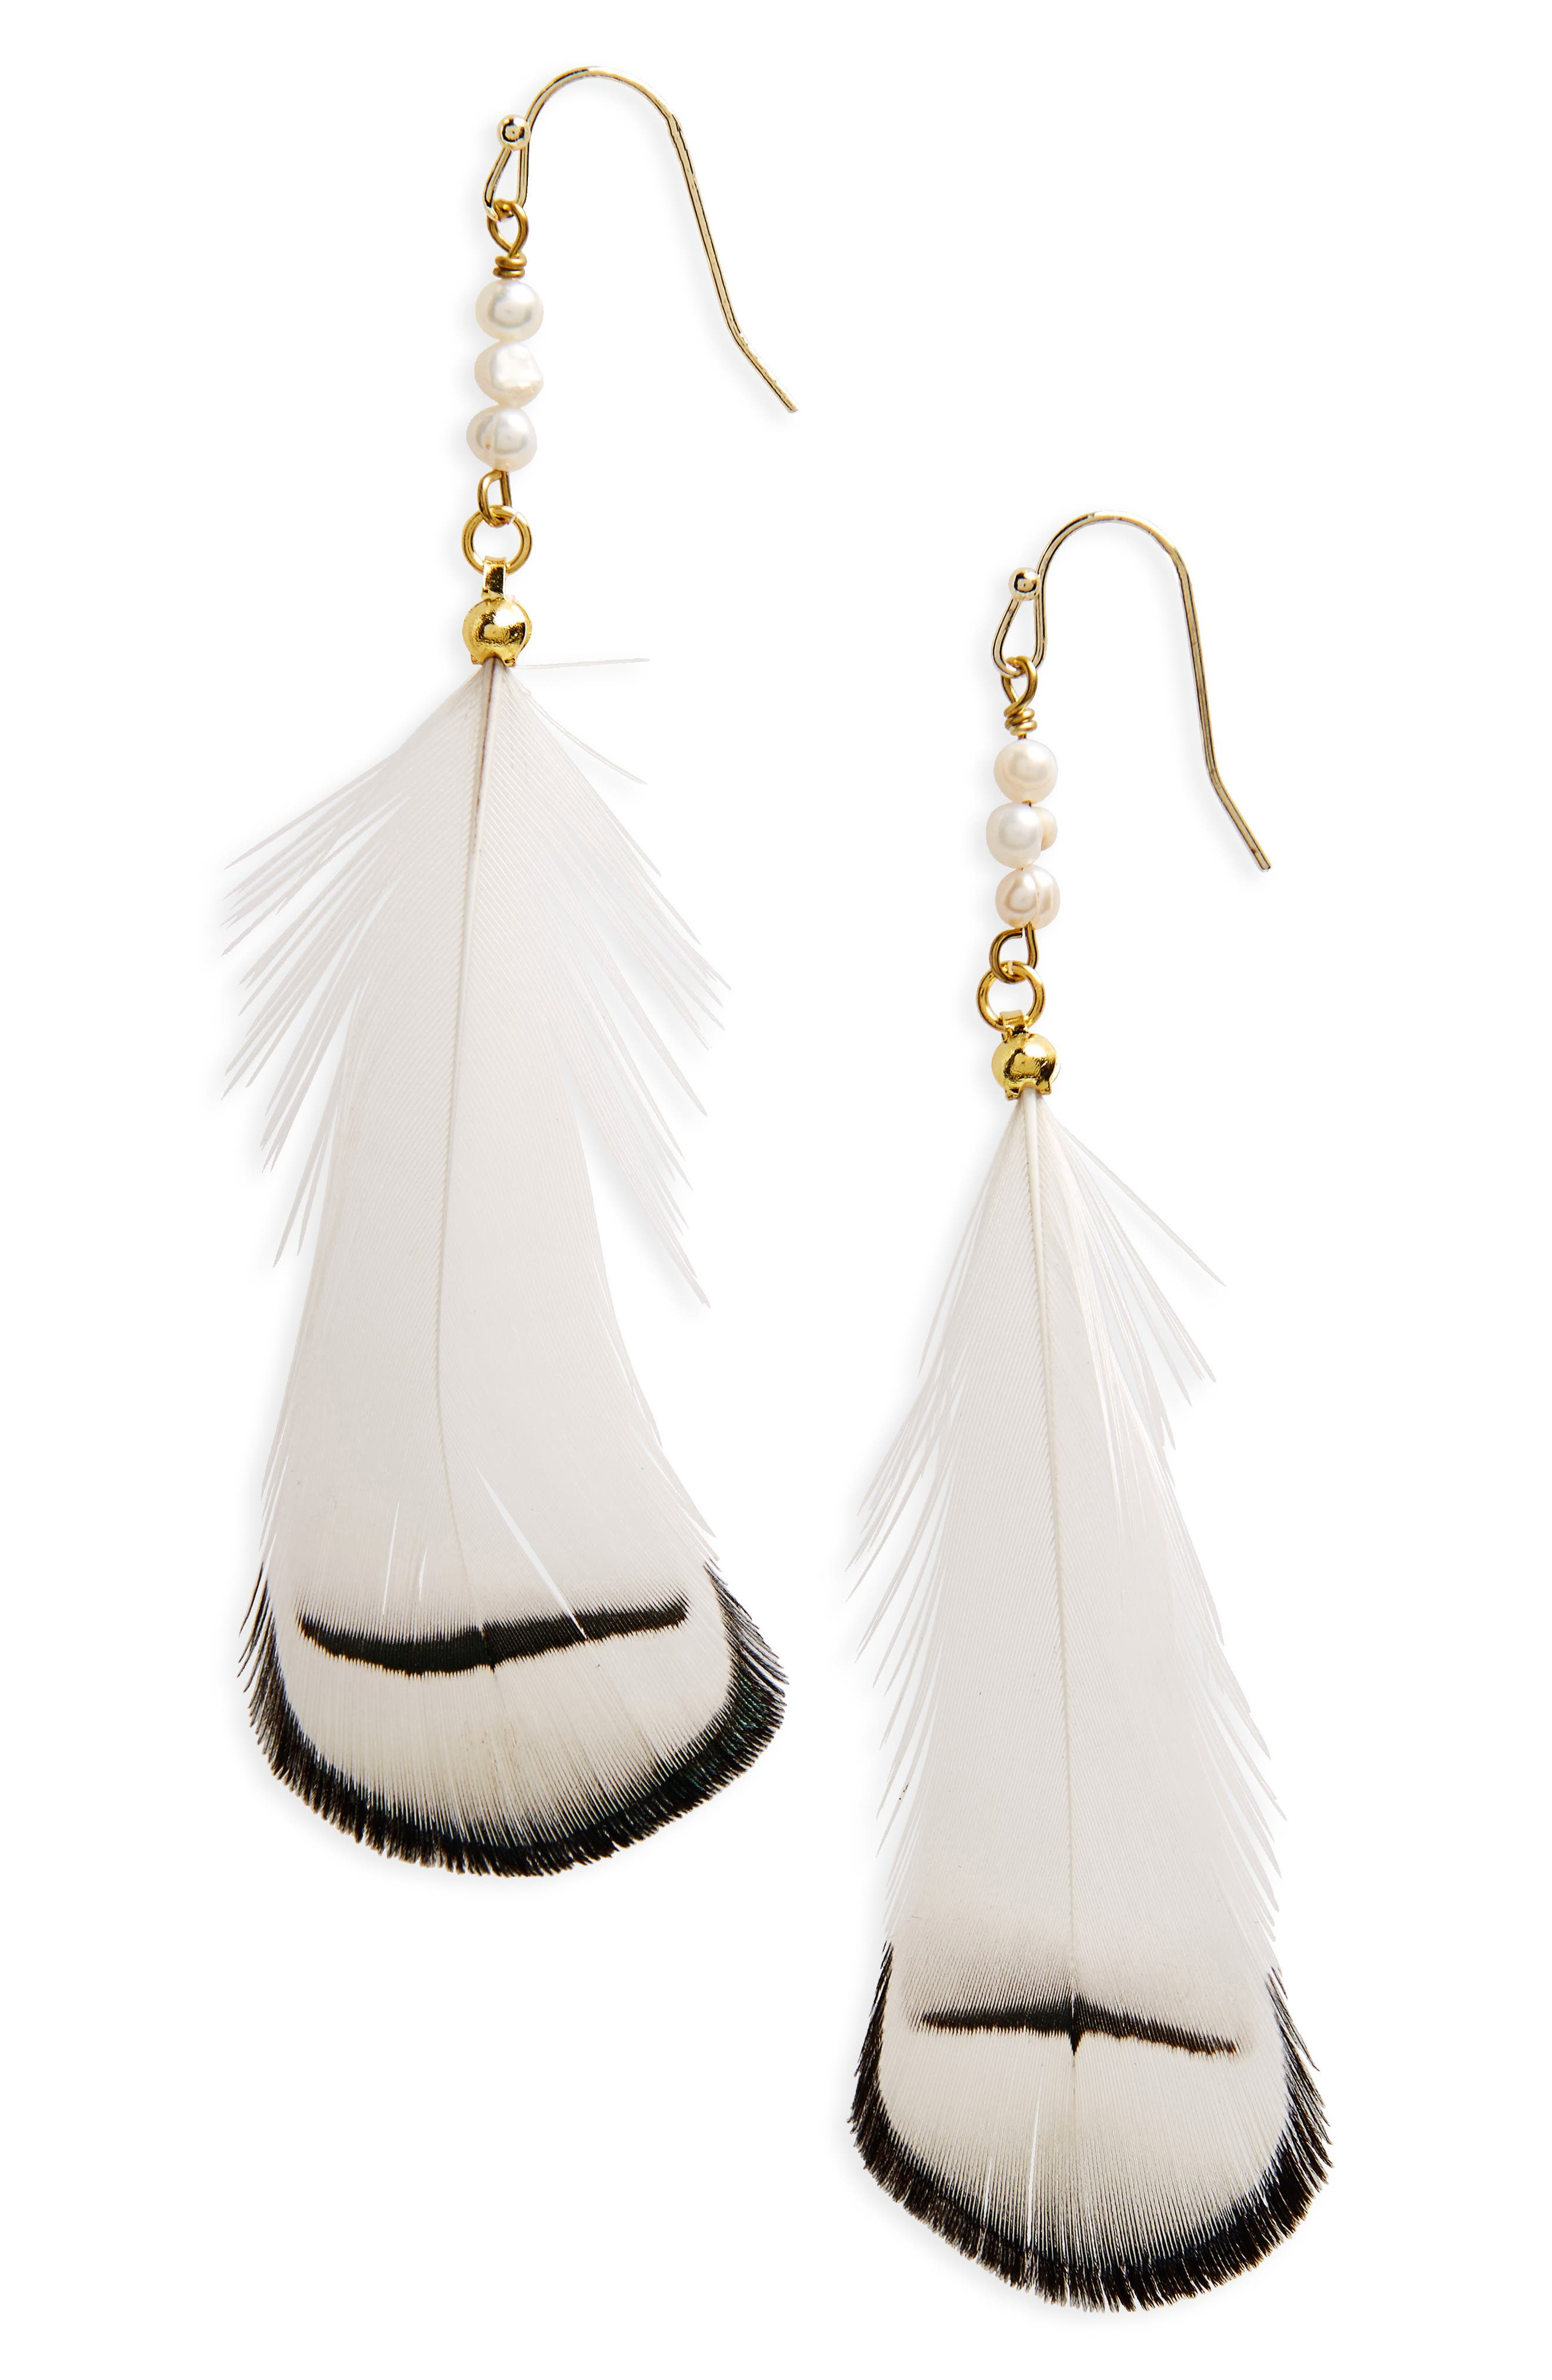 Feather & Pearl Earrings,                         Main,                         color, White/ Multi